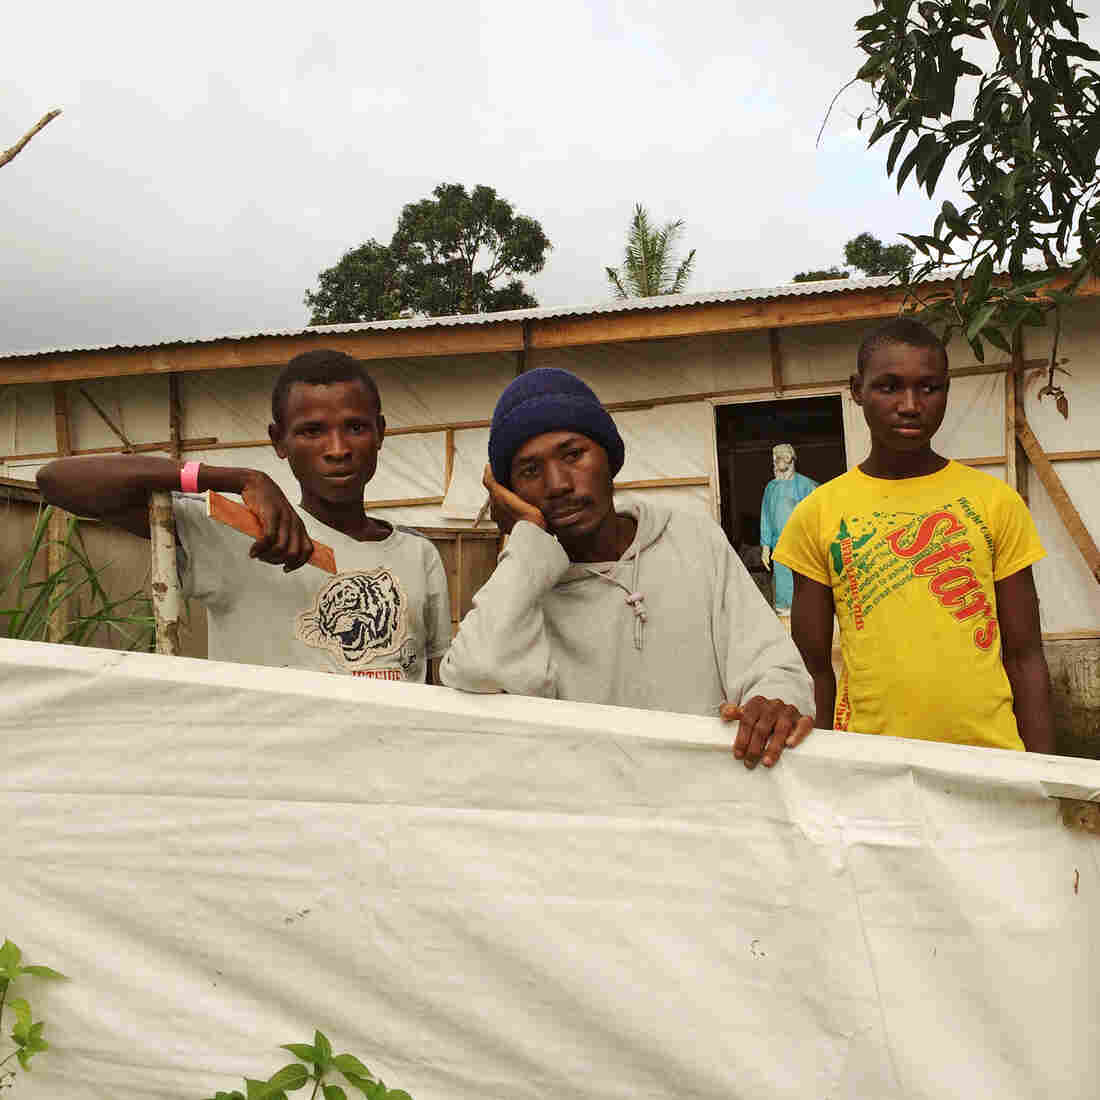 Patients recovering from Ebola at the Kenema treatment center must remain behind white plastic fencing until they are officially discharged.